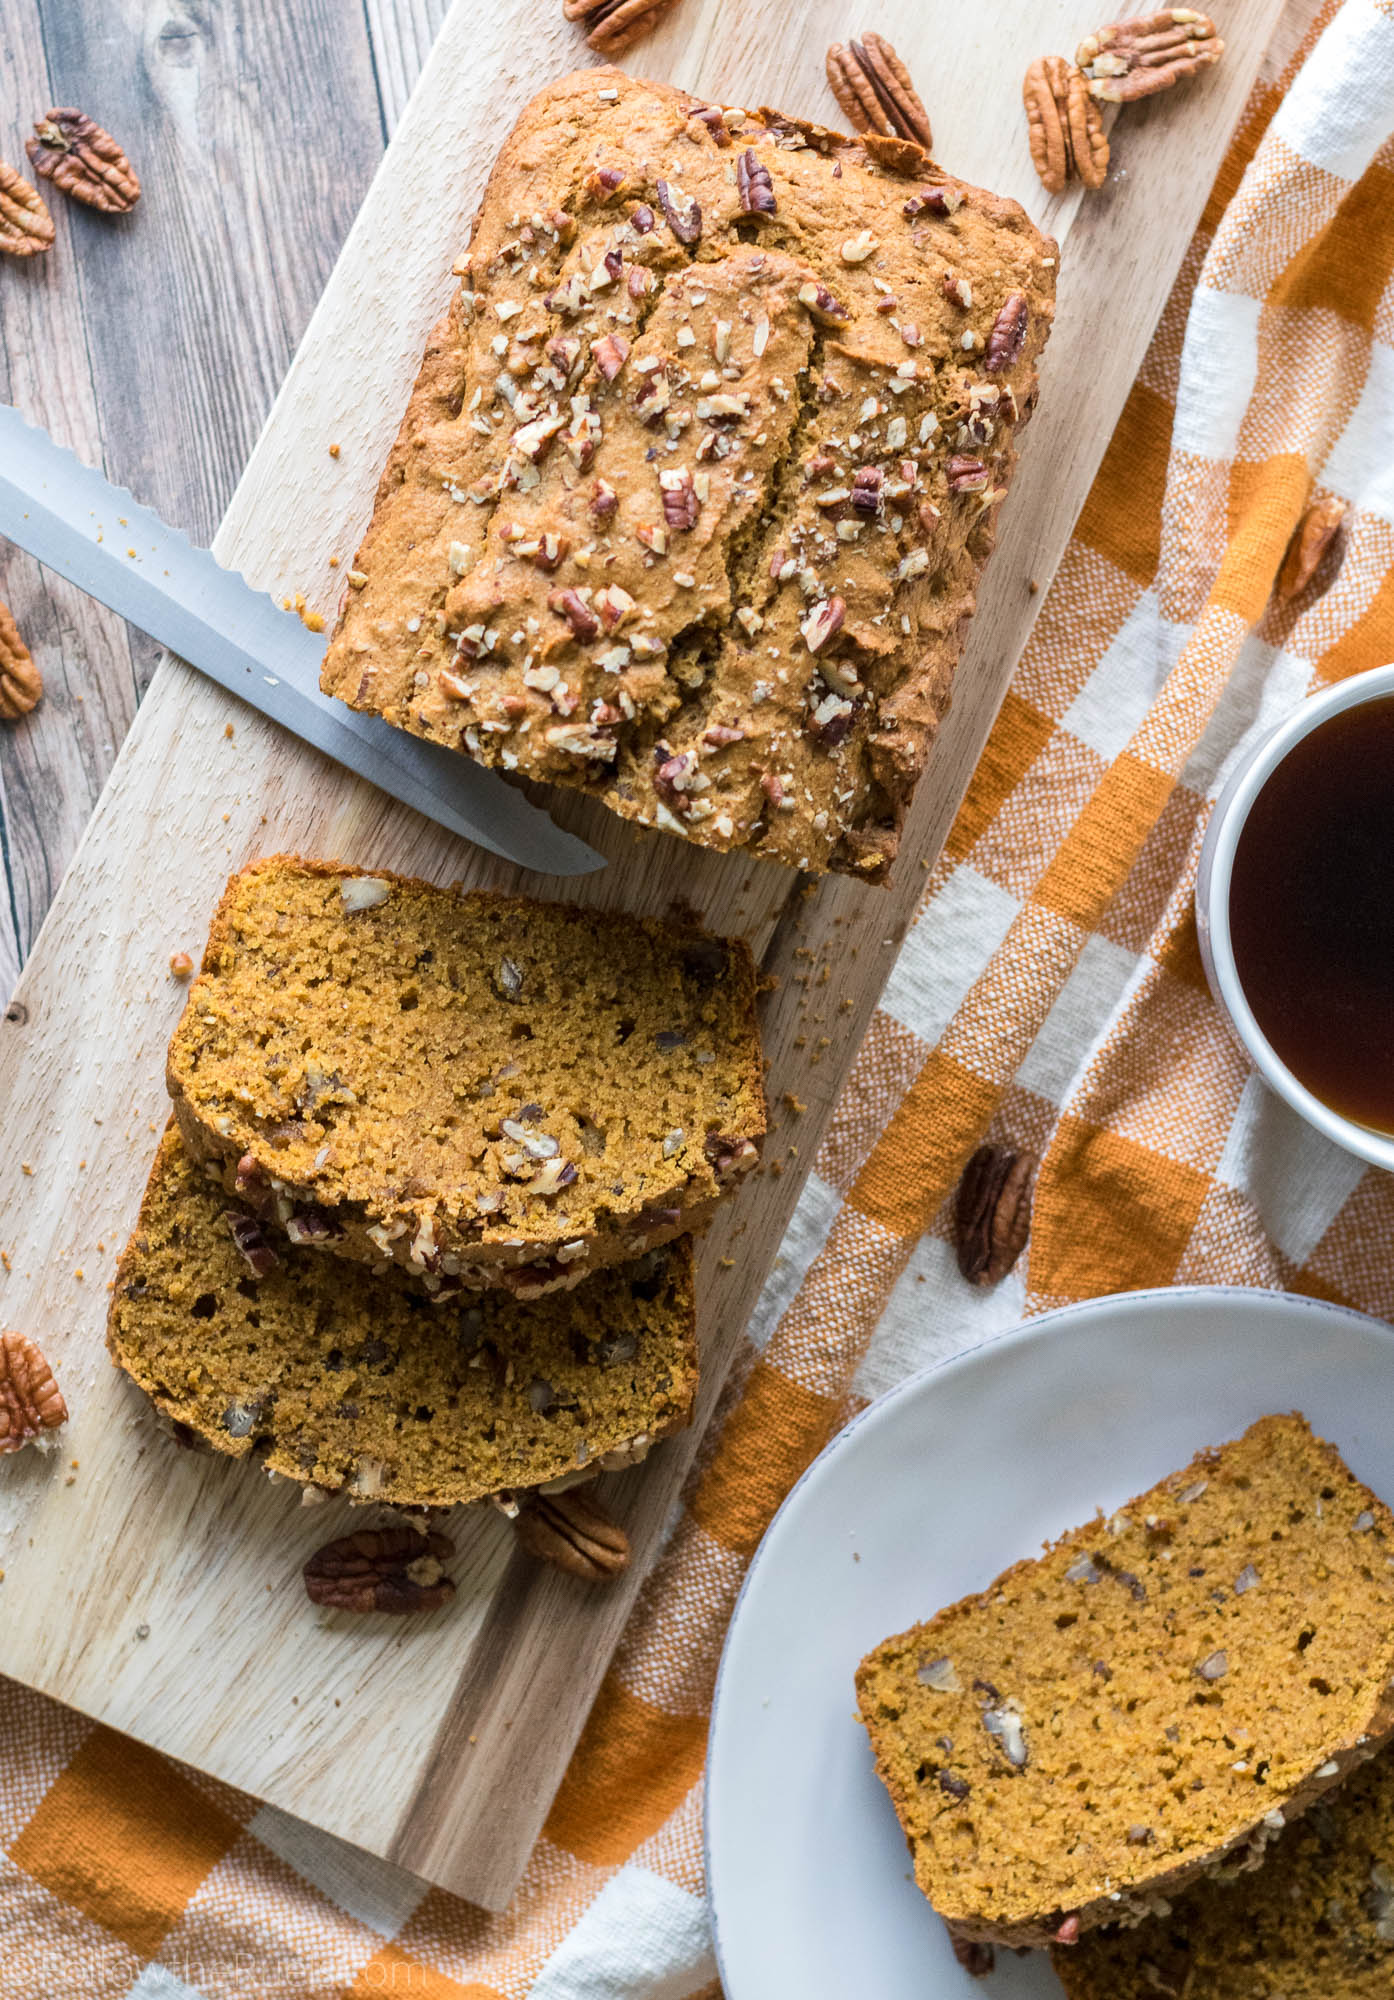 Maple-Pecan-Pumpkin-Bread-7.jpg